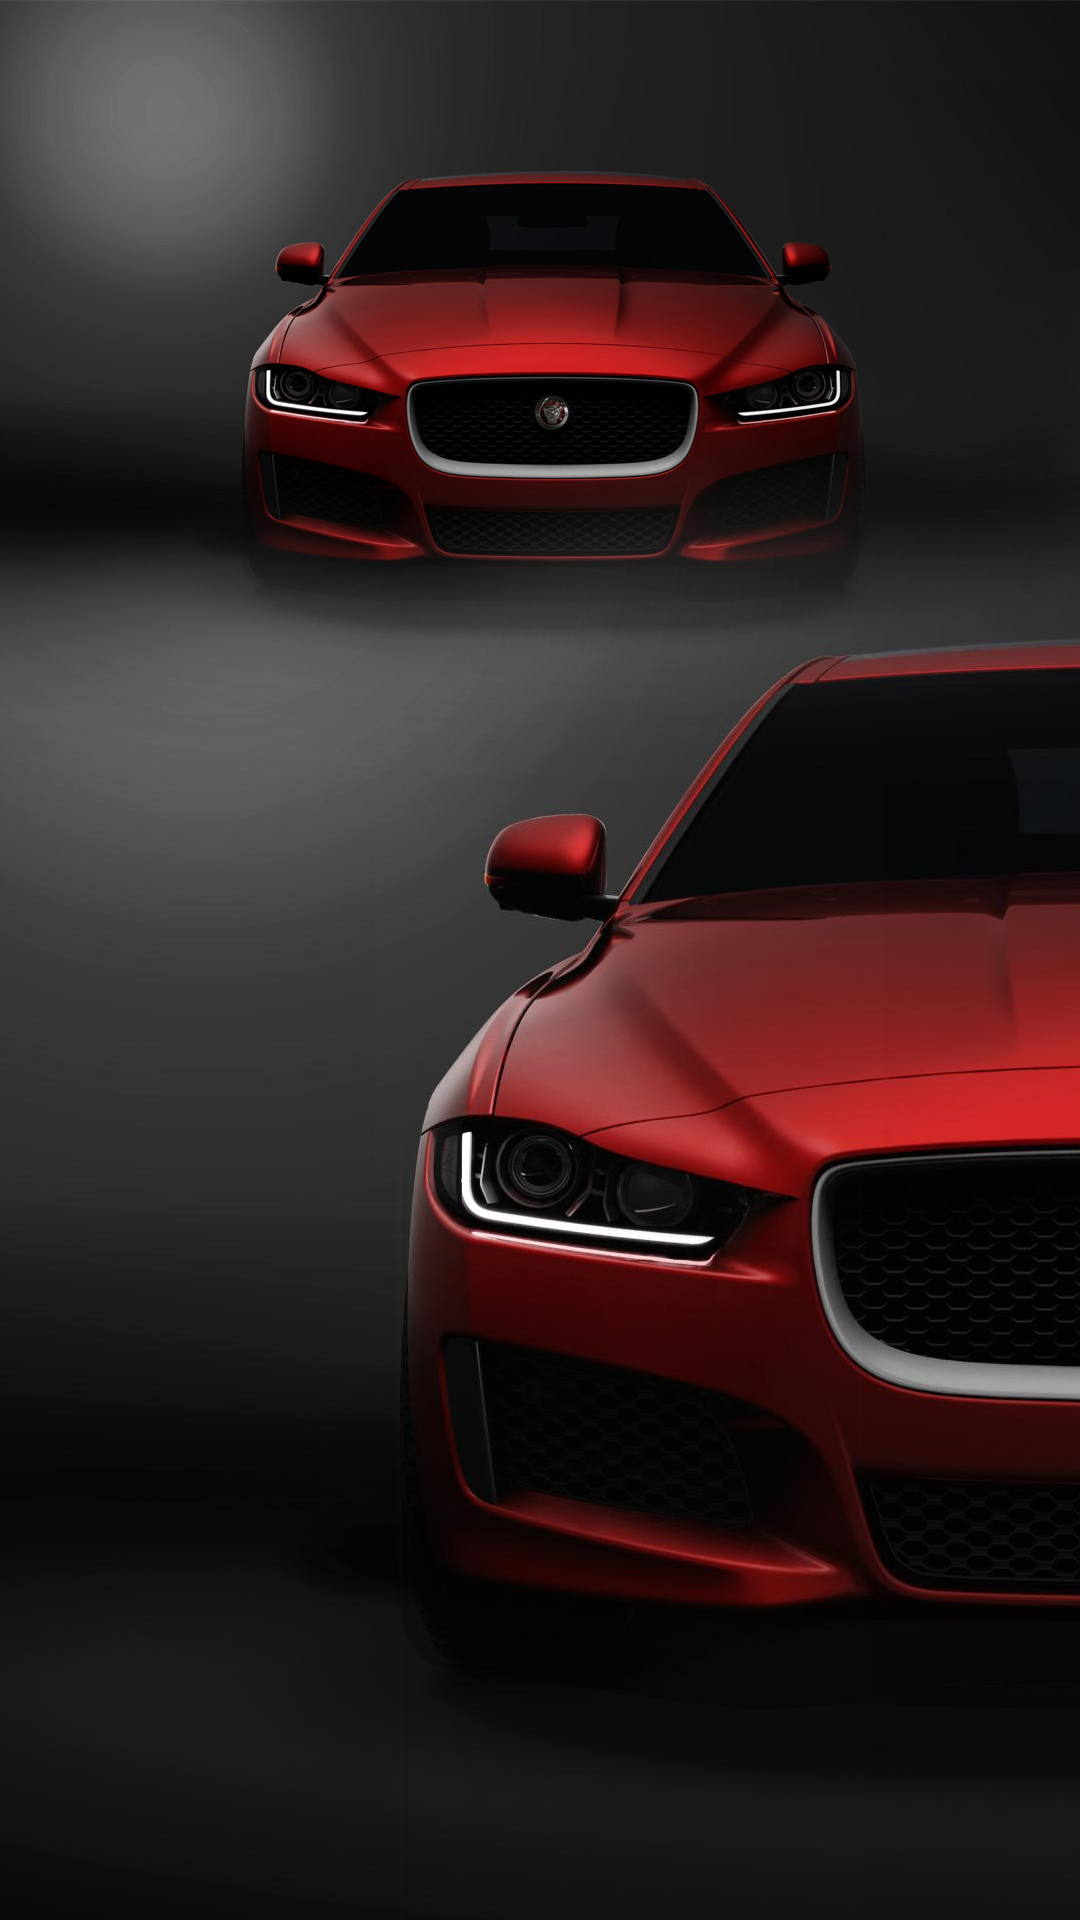 Red Car Wallpaper Hd For Mobile HD Image for Free